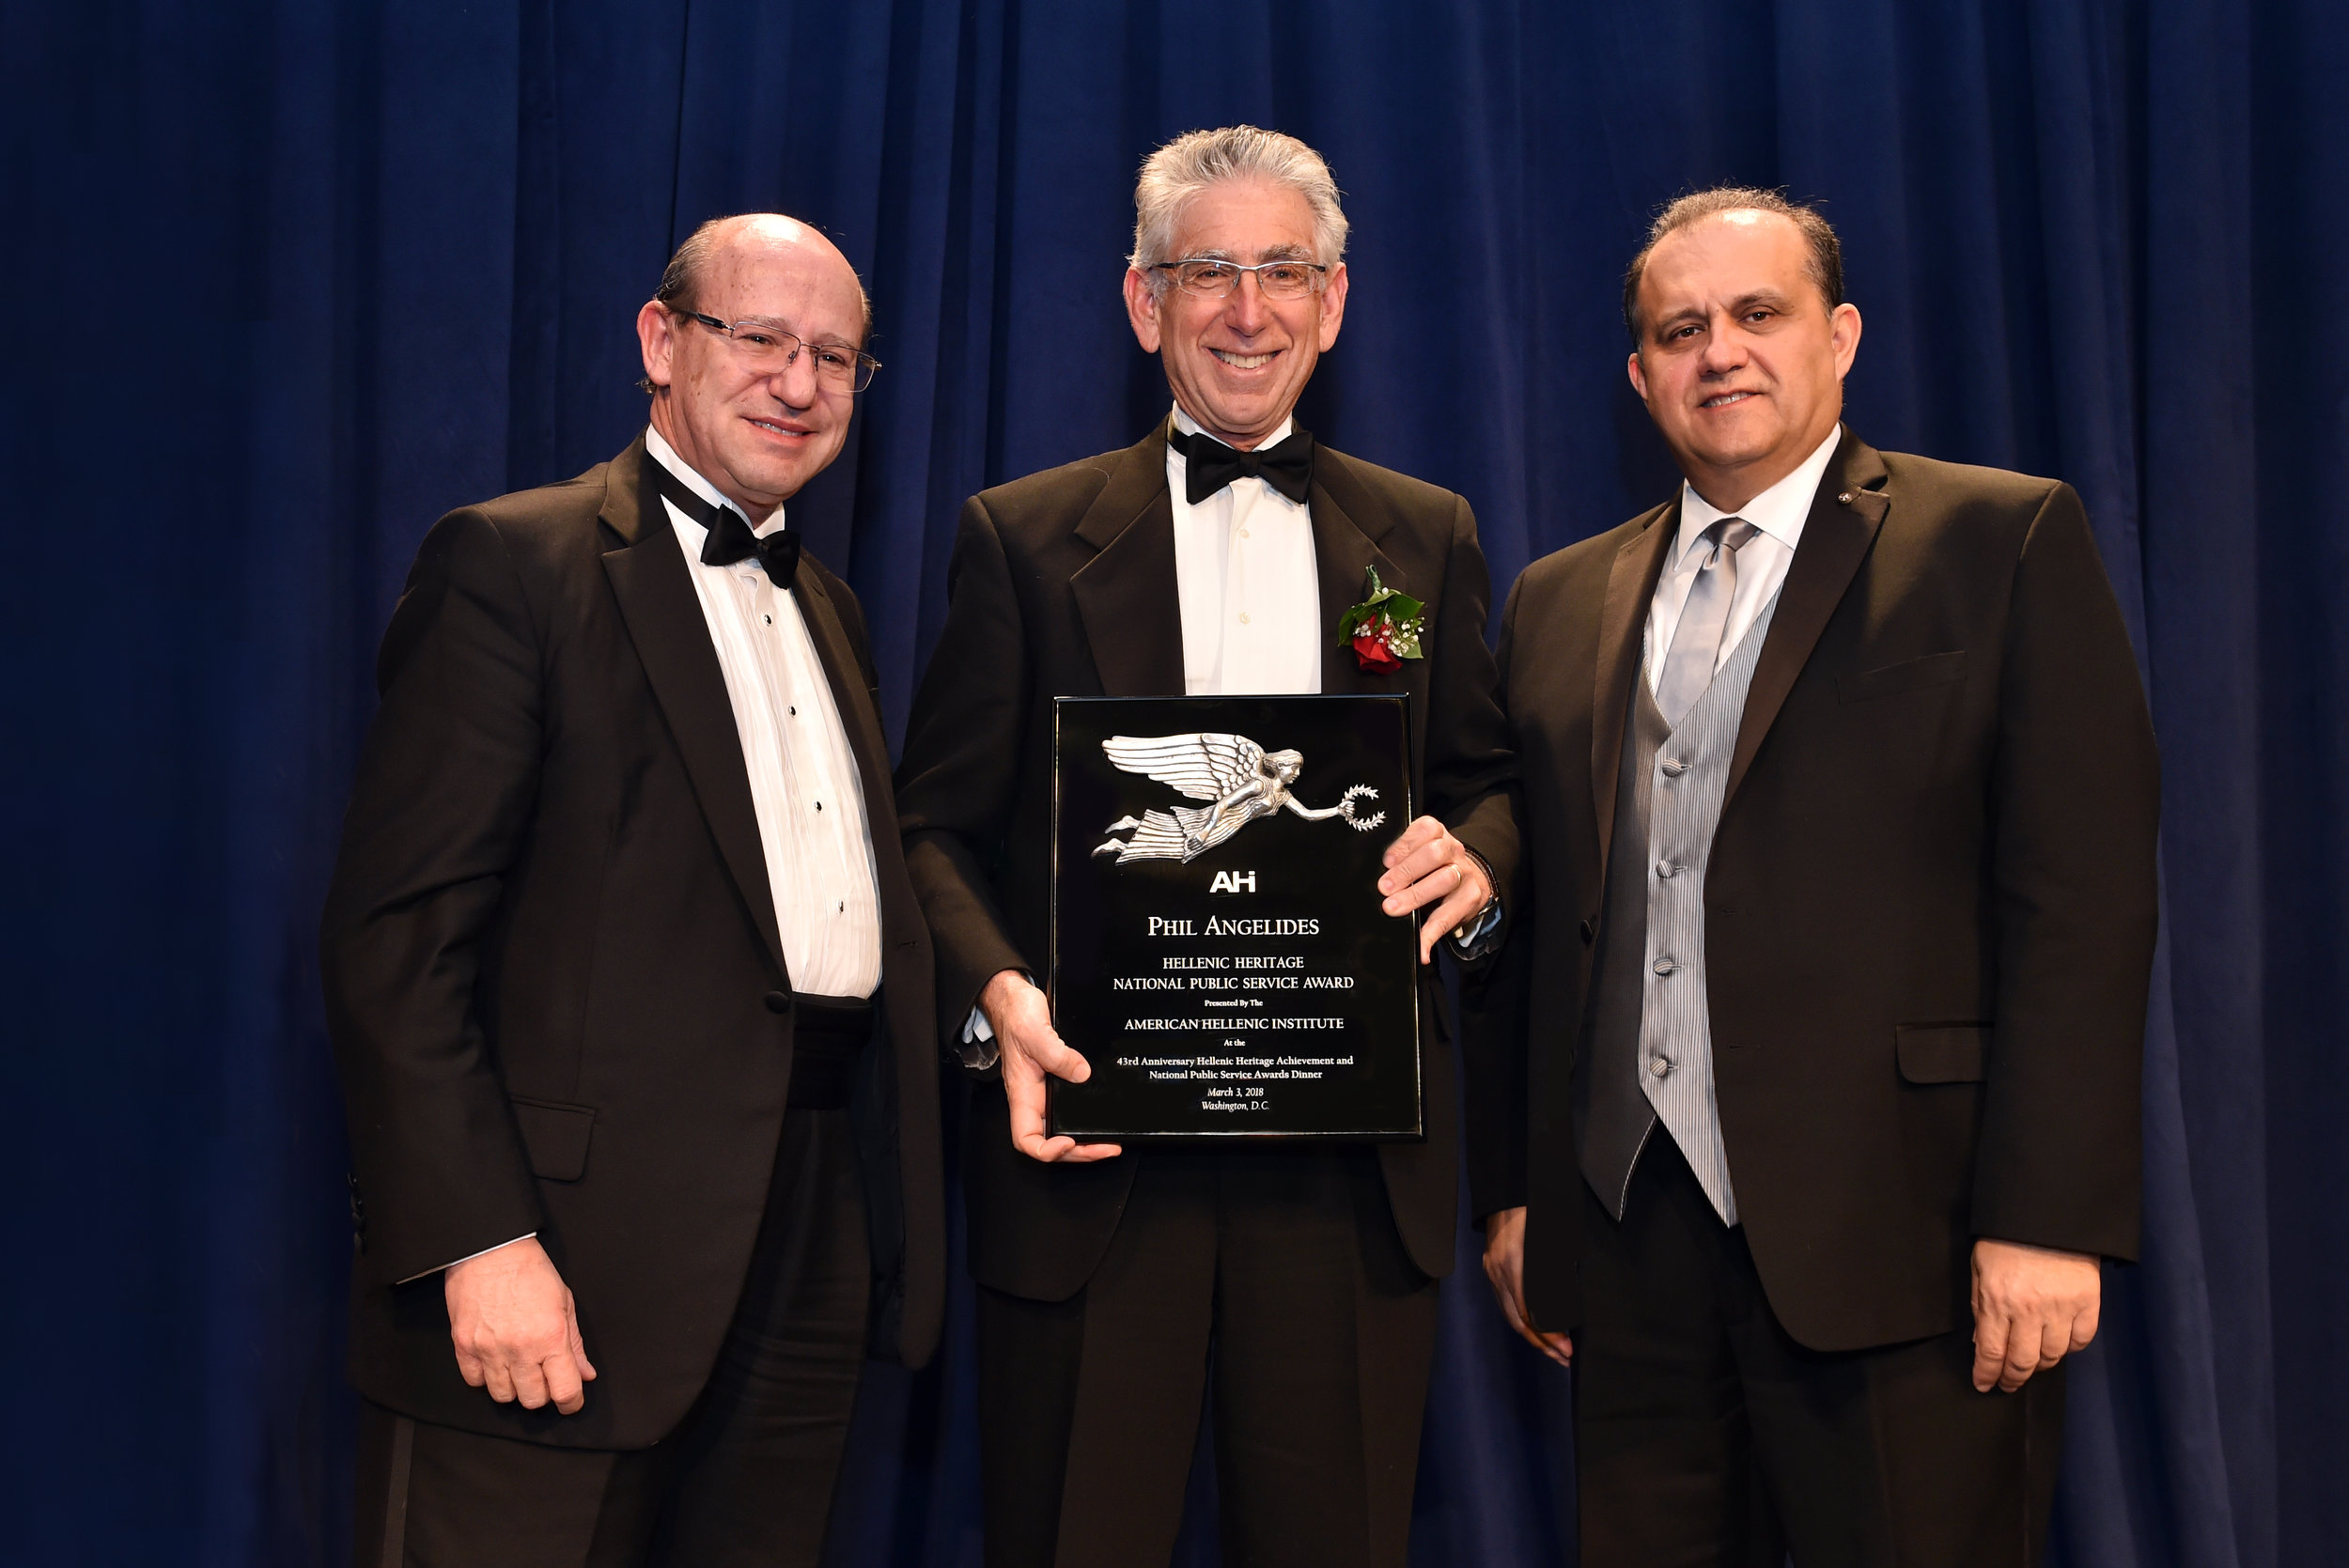 Phil Angelides receives the AHI Hellenic Heritage National Public Service Award.